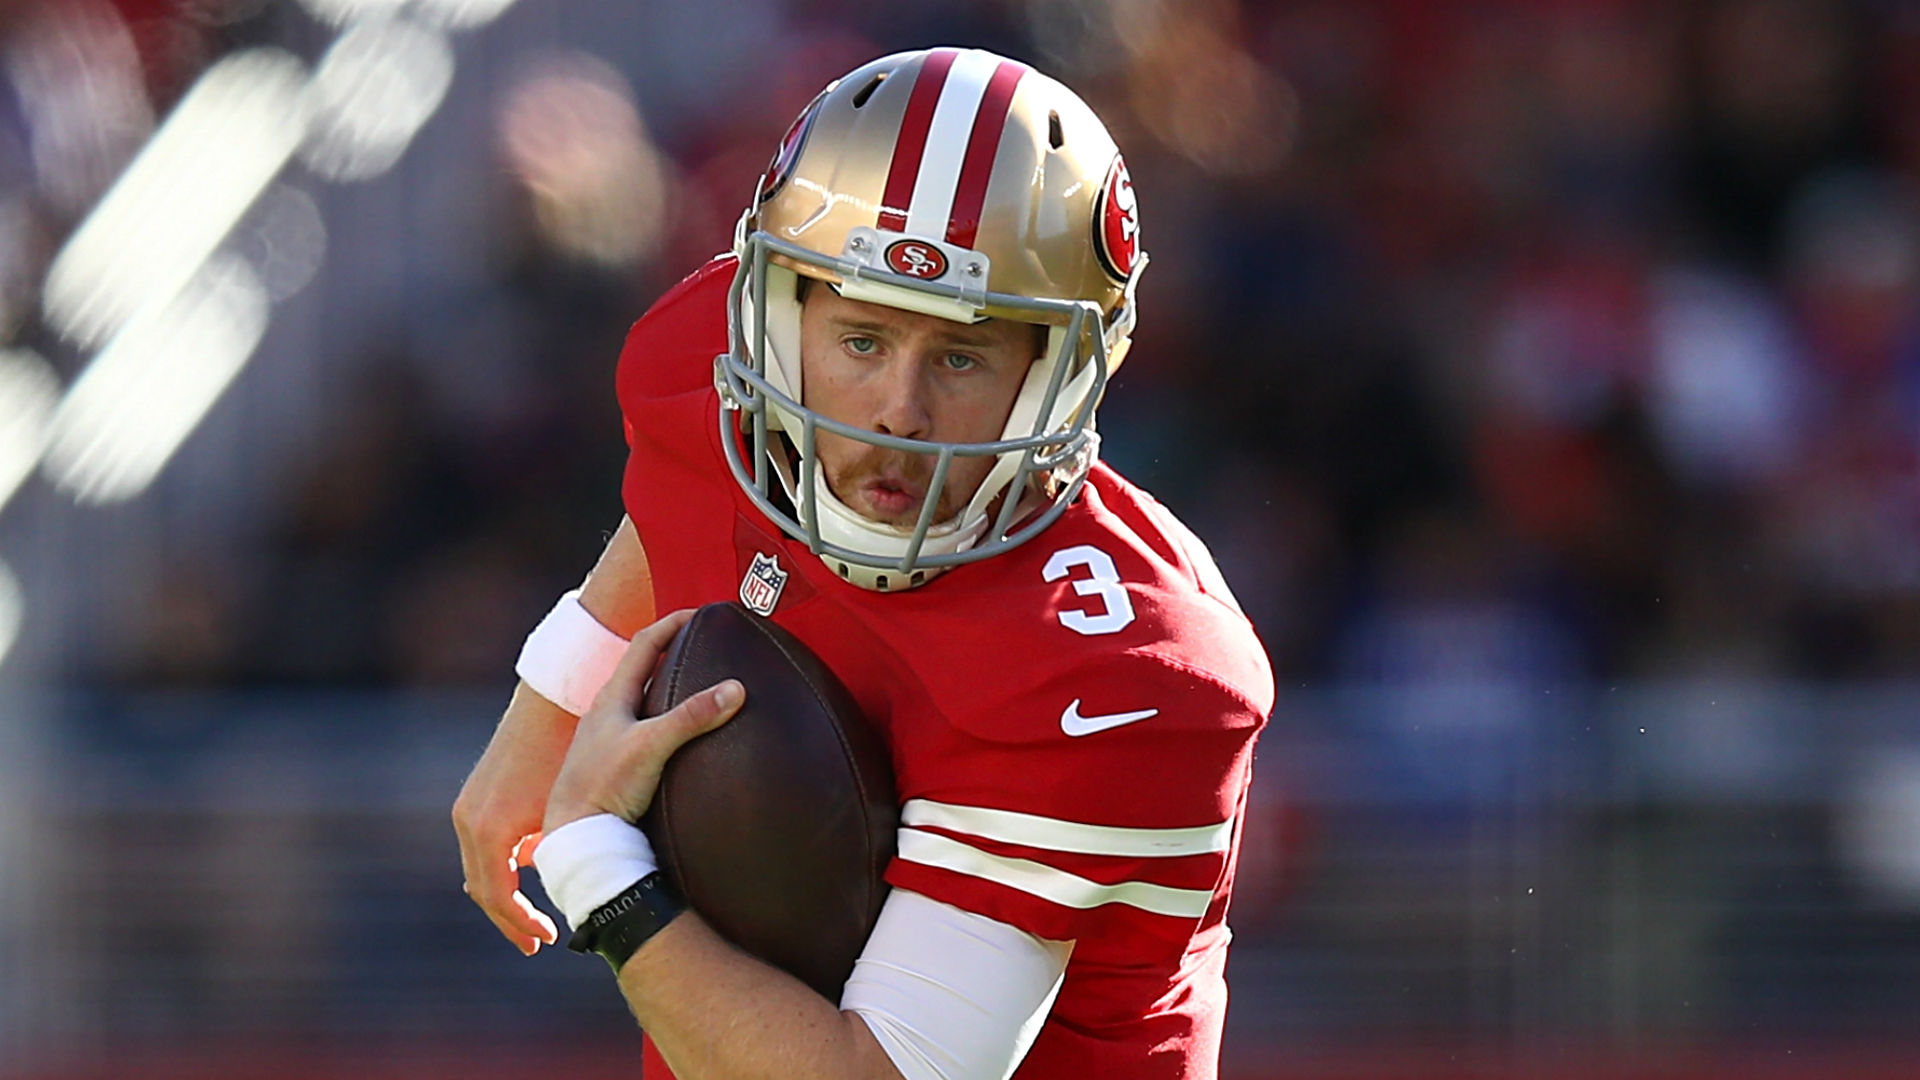 C.J. Beathard, not Jimmy Garoppolo, named 49ers starter vs. Seahawks